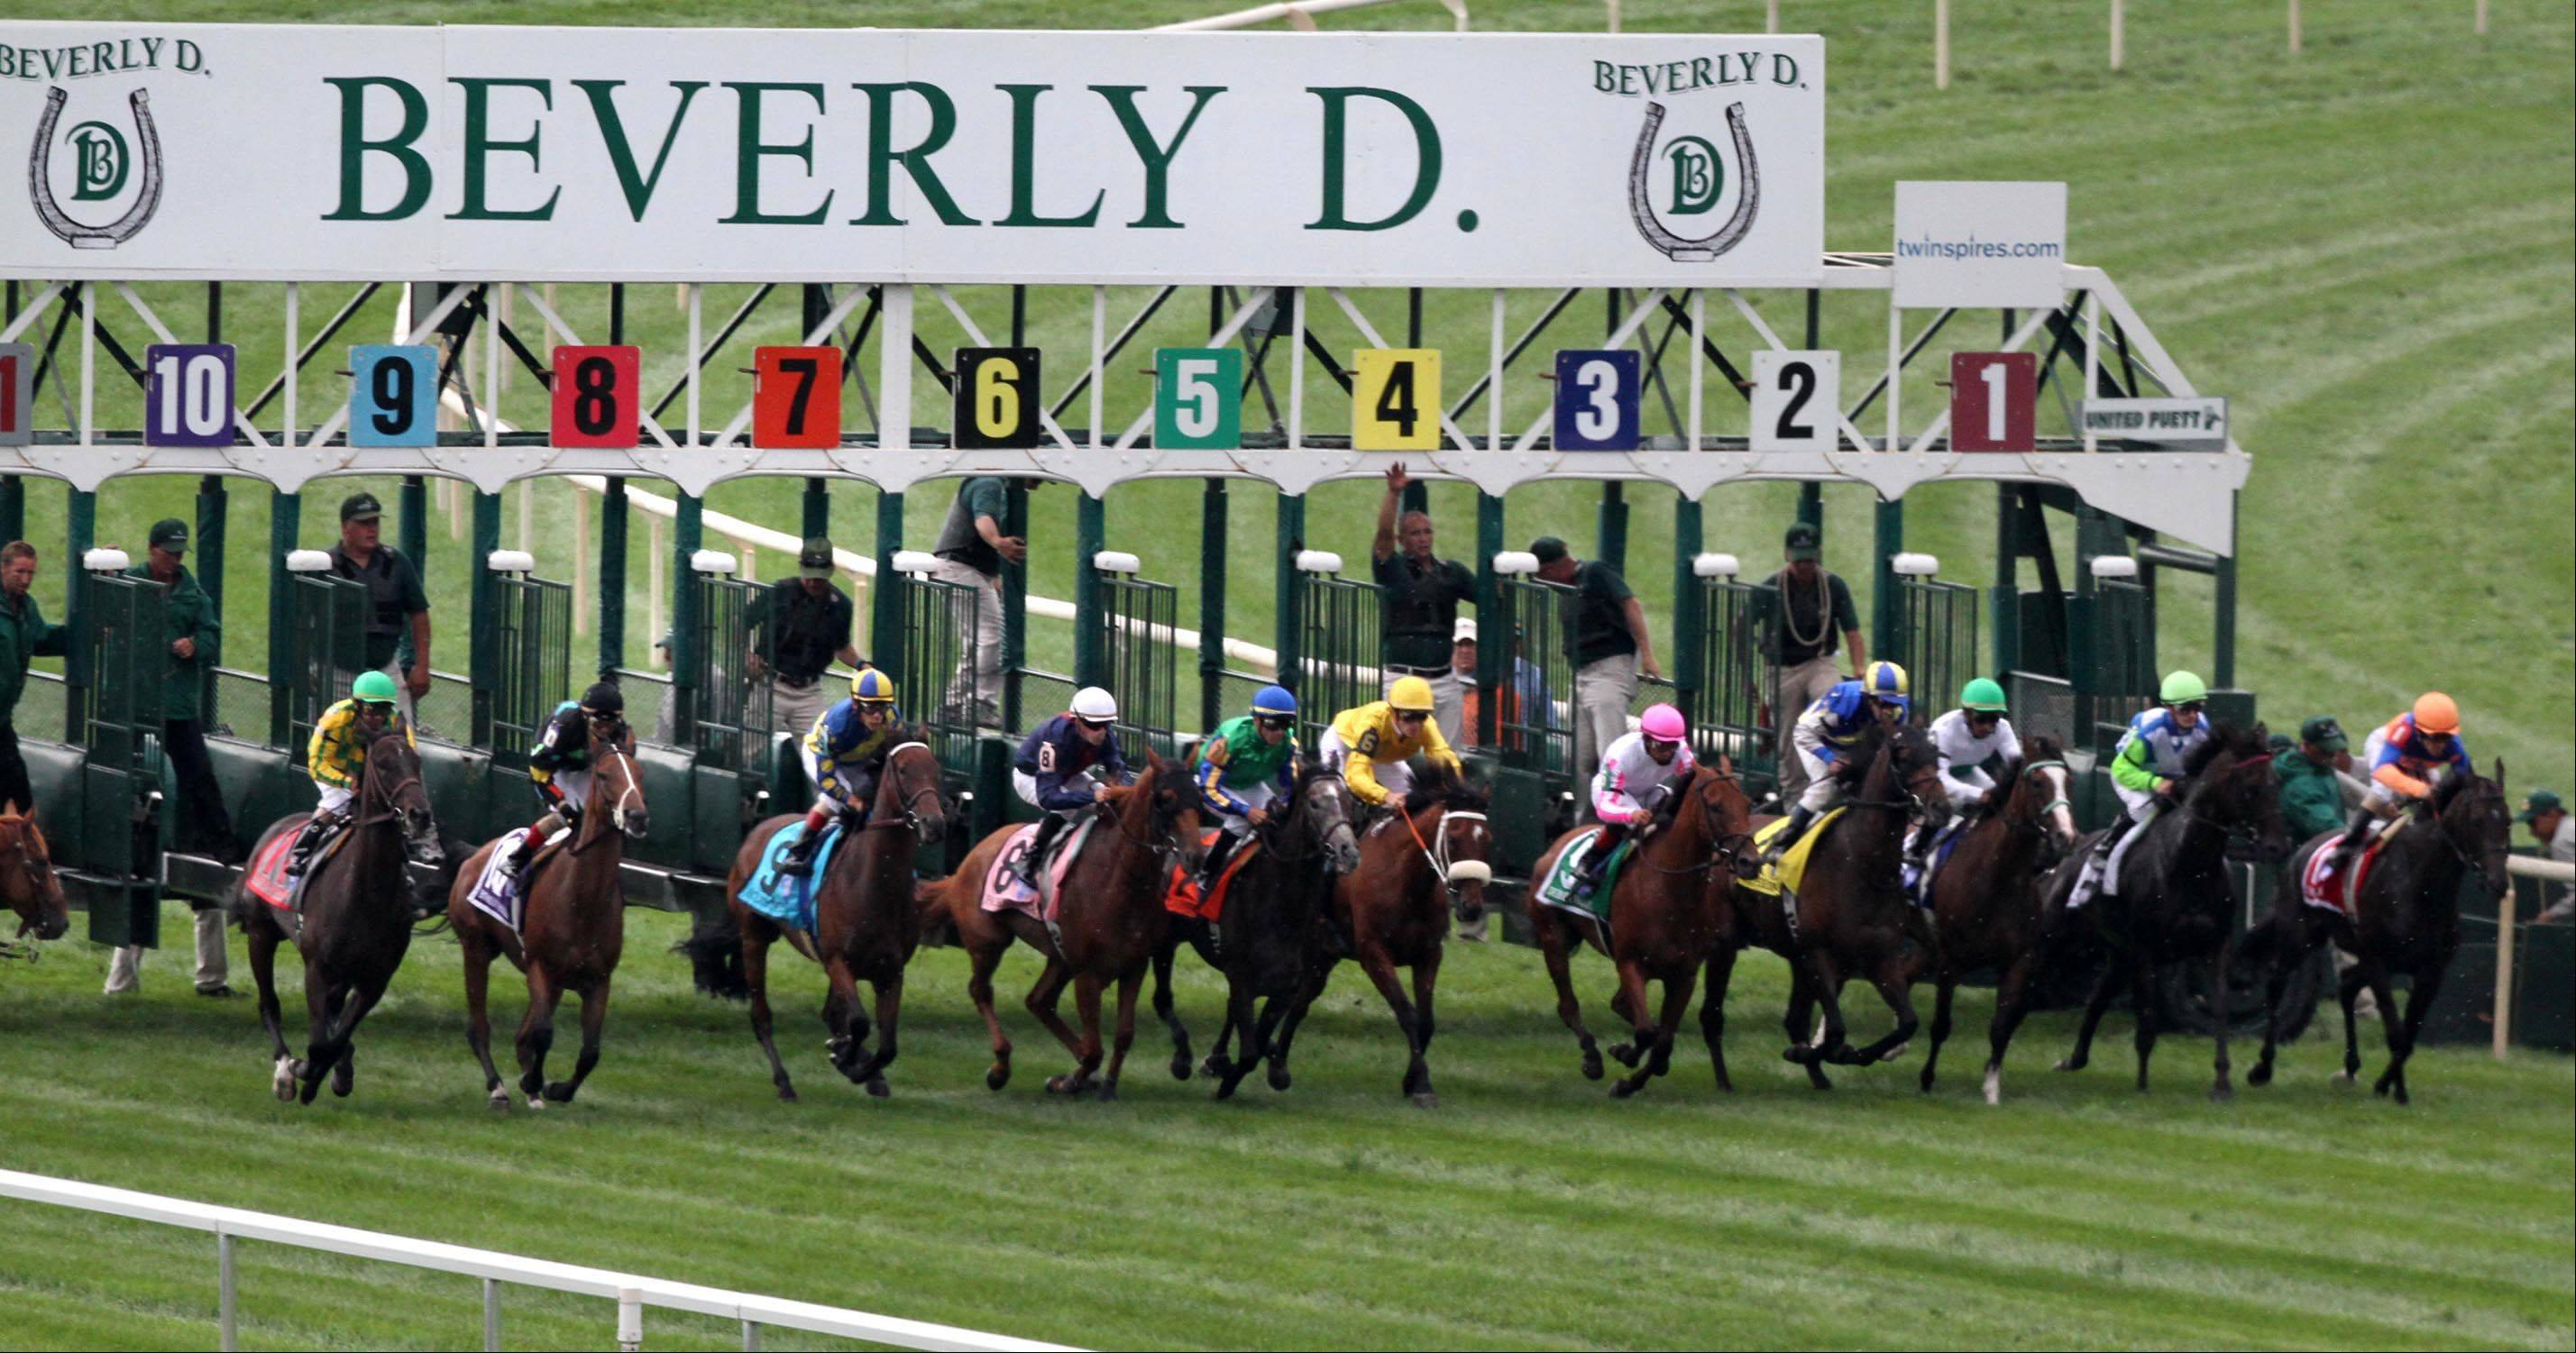 The start of the Beverly D at Arlington Park on Saturday.